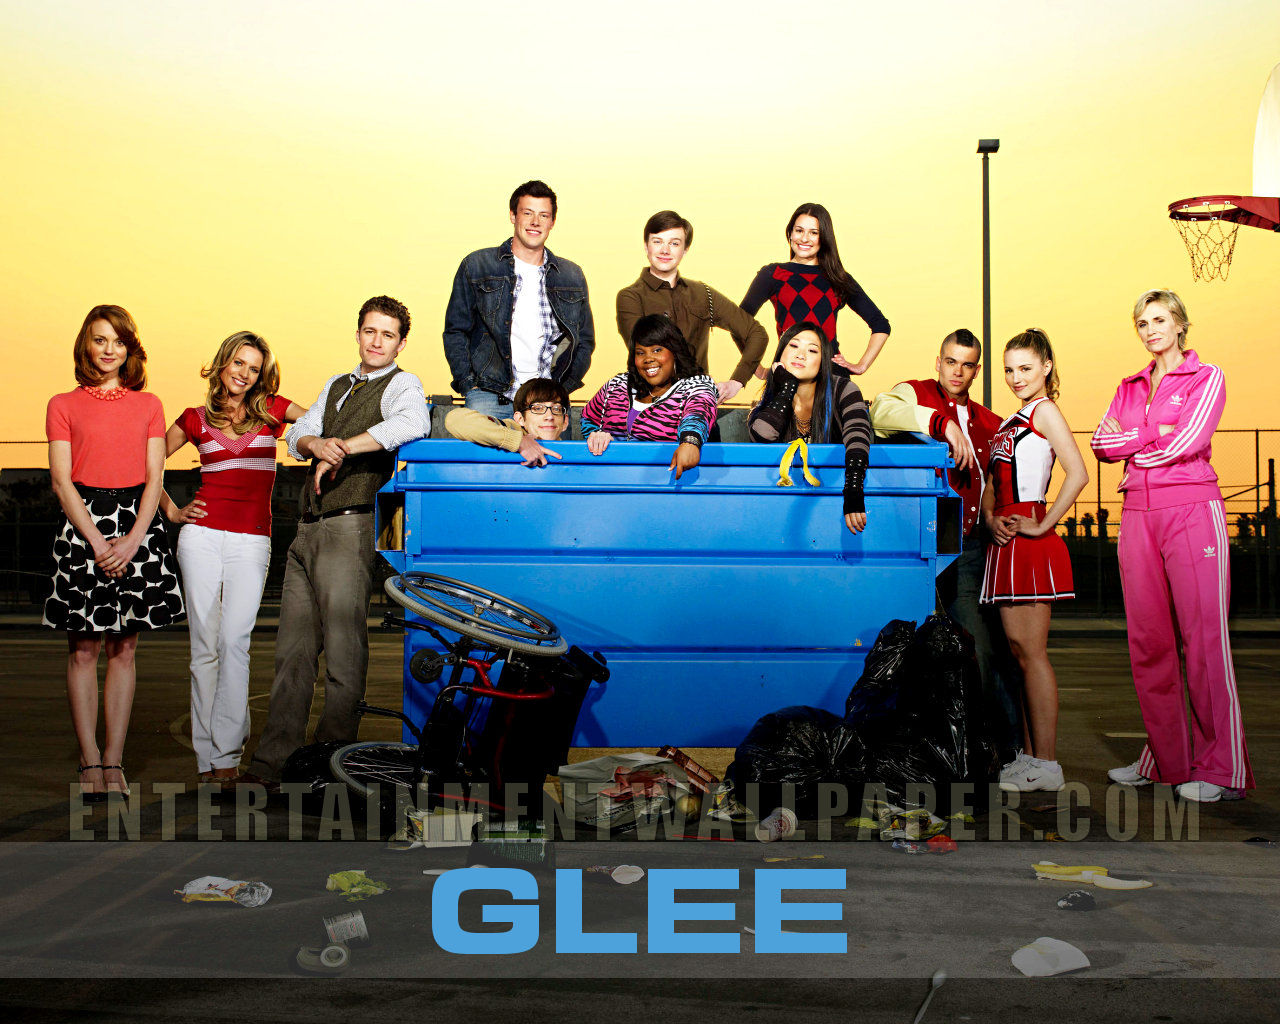 external image Tv_glee02.jpg